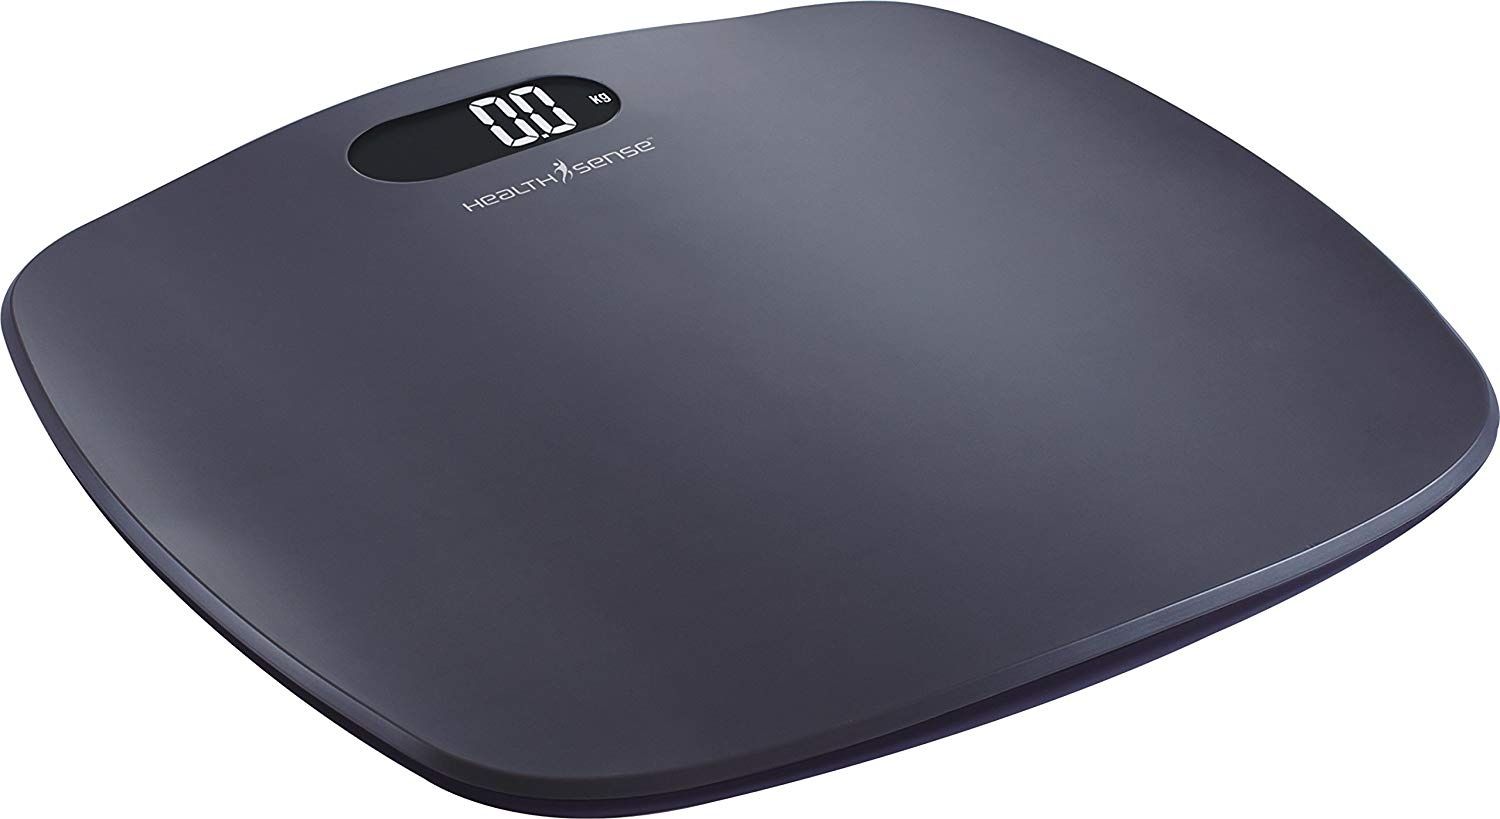 Health Sense PS 126 Digital Personal Body Weight Bathroom Scale with Step-On Technology (Grey)